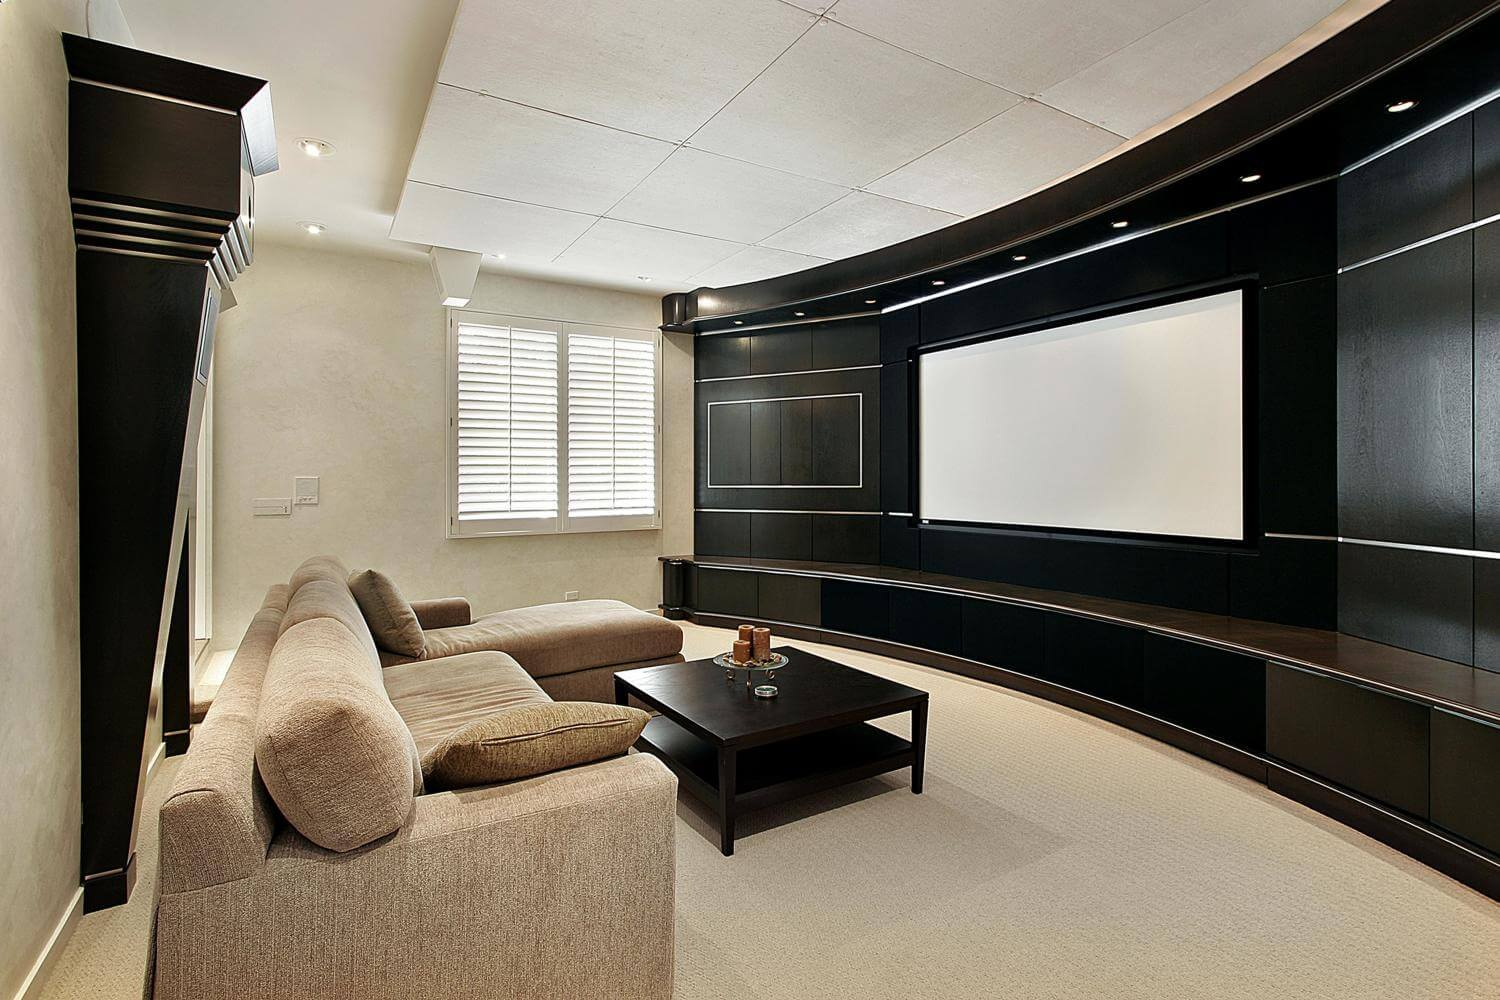 Hardwood Basement Renovation, seamless and modern. Calgary renovation by Interiors with Elegance